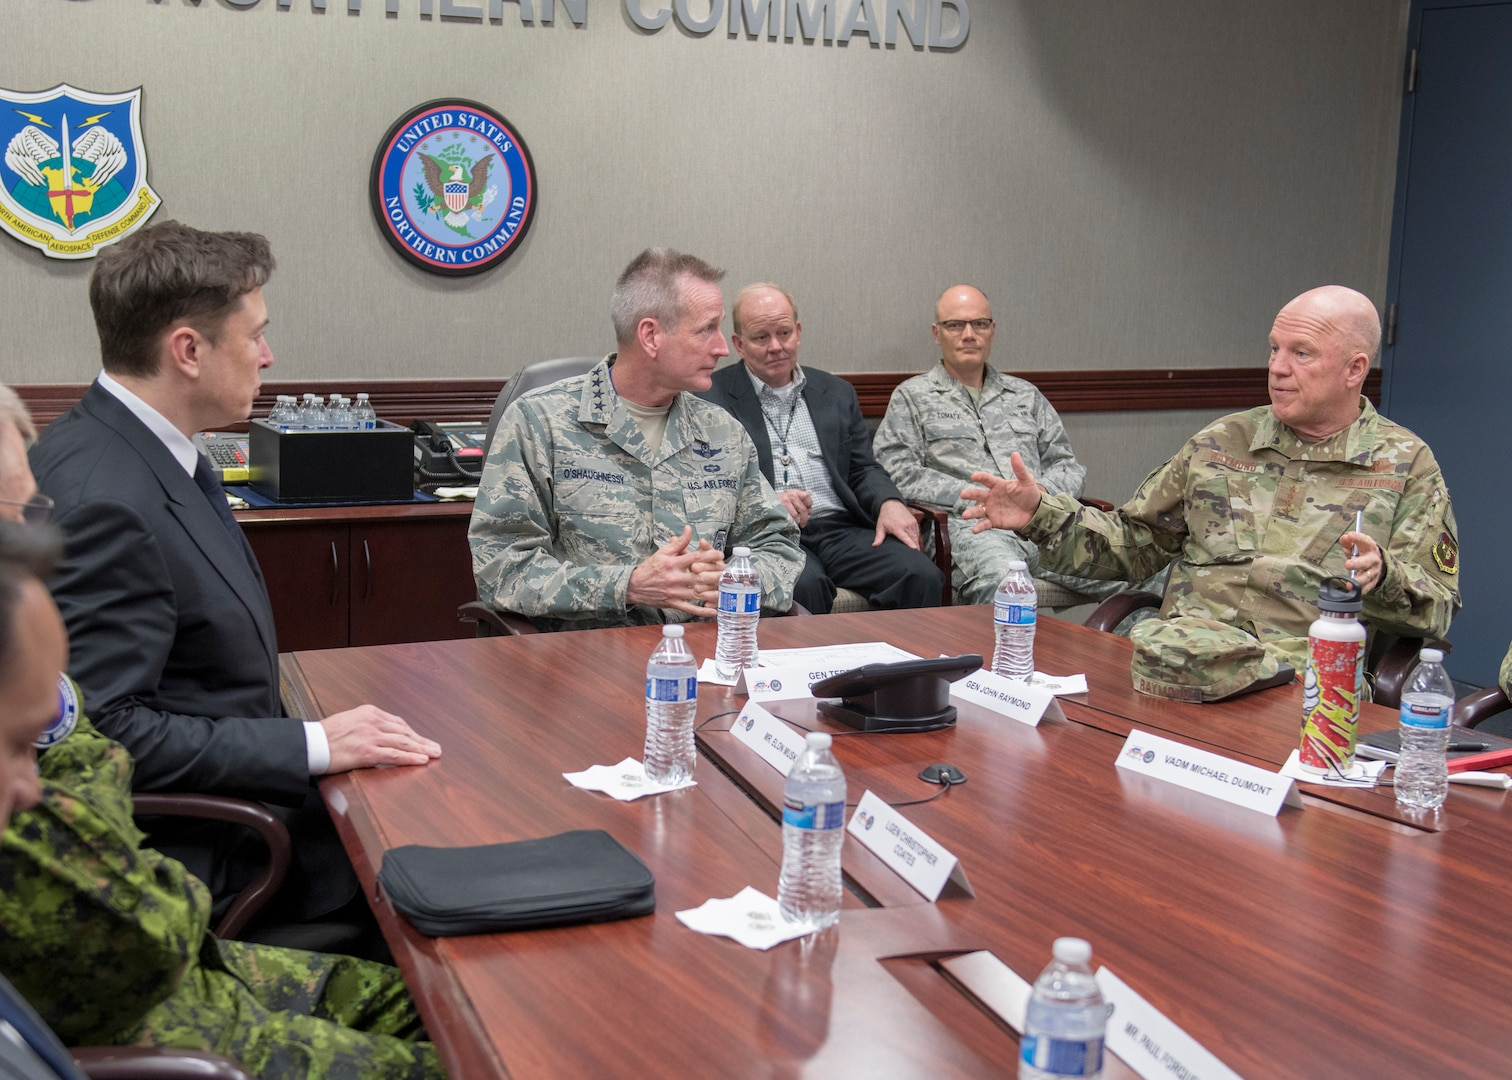 SpaceX CEO Elon Musk discusses U.S. space operations with Gen. Jay Raymond, the Commander, Air Force Space Command, and Joint Force Space Component Commander; and Gen Terrence O'Shaughnessy, the Commander of the North American Aerospace Defense Command and U.S. Northern Command, April 15, 2019. During Musk's visit to Colorado Springs, Colorado, he participated in conversations and round table briefings about future space operations and homeland defense innovation.